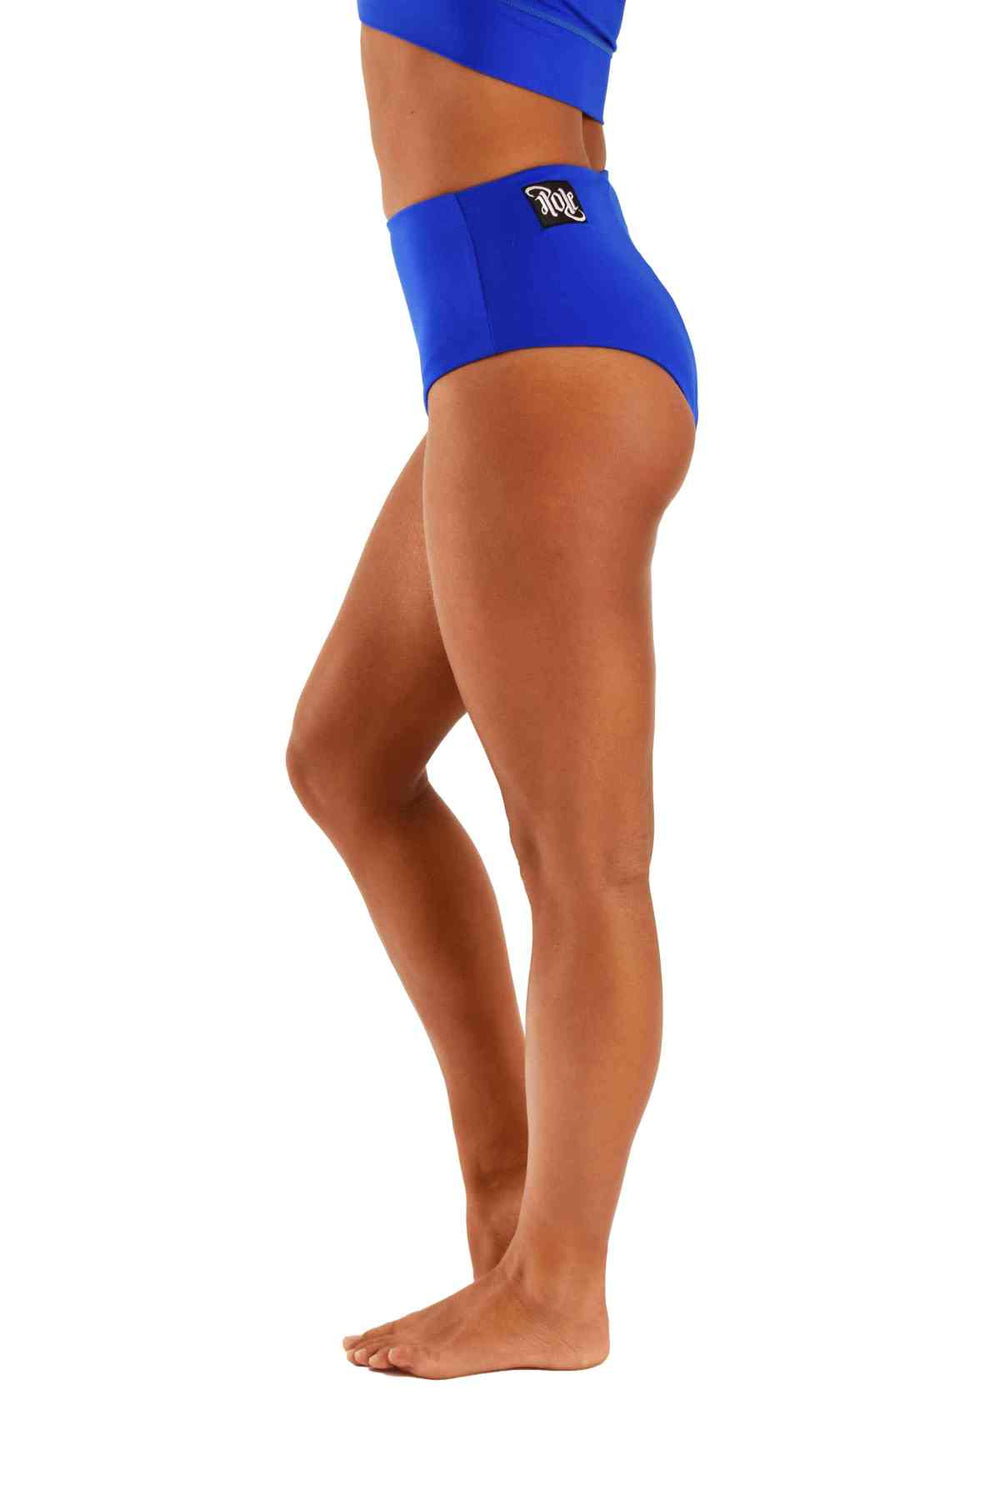 OFF THE POLE High Waisted Shorts - Royal Blue